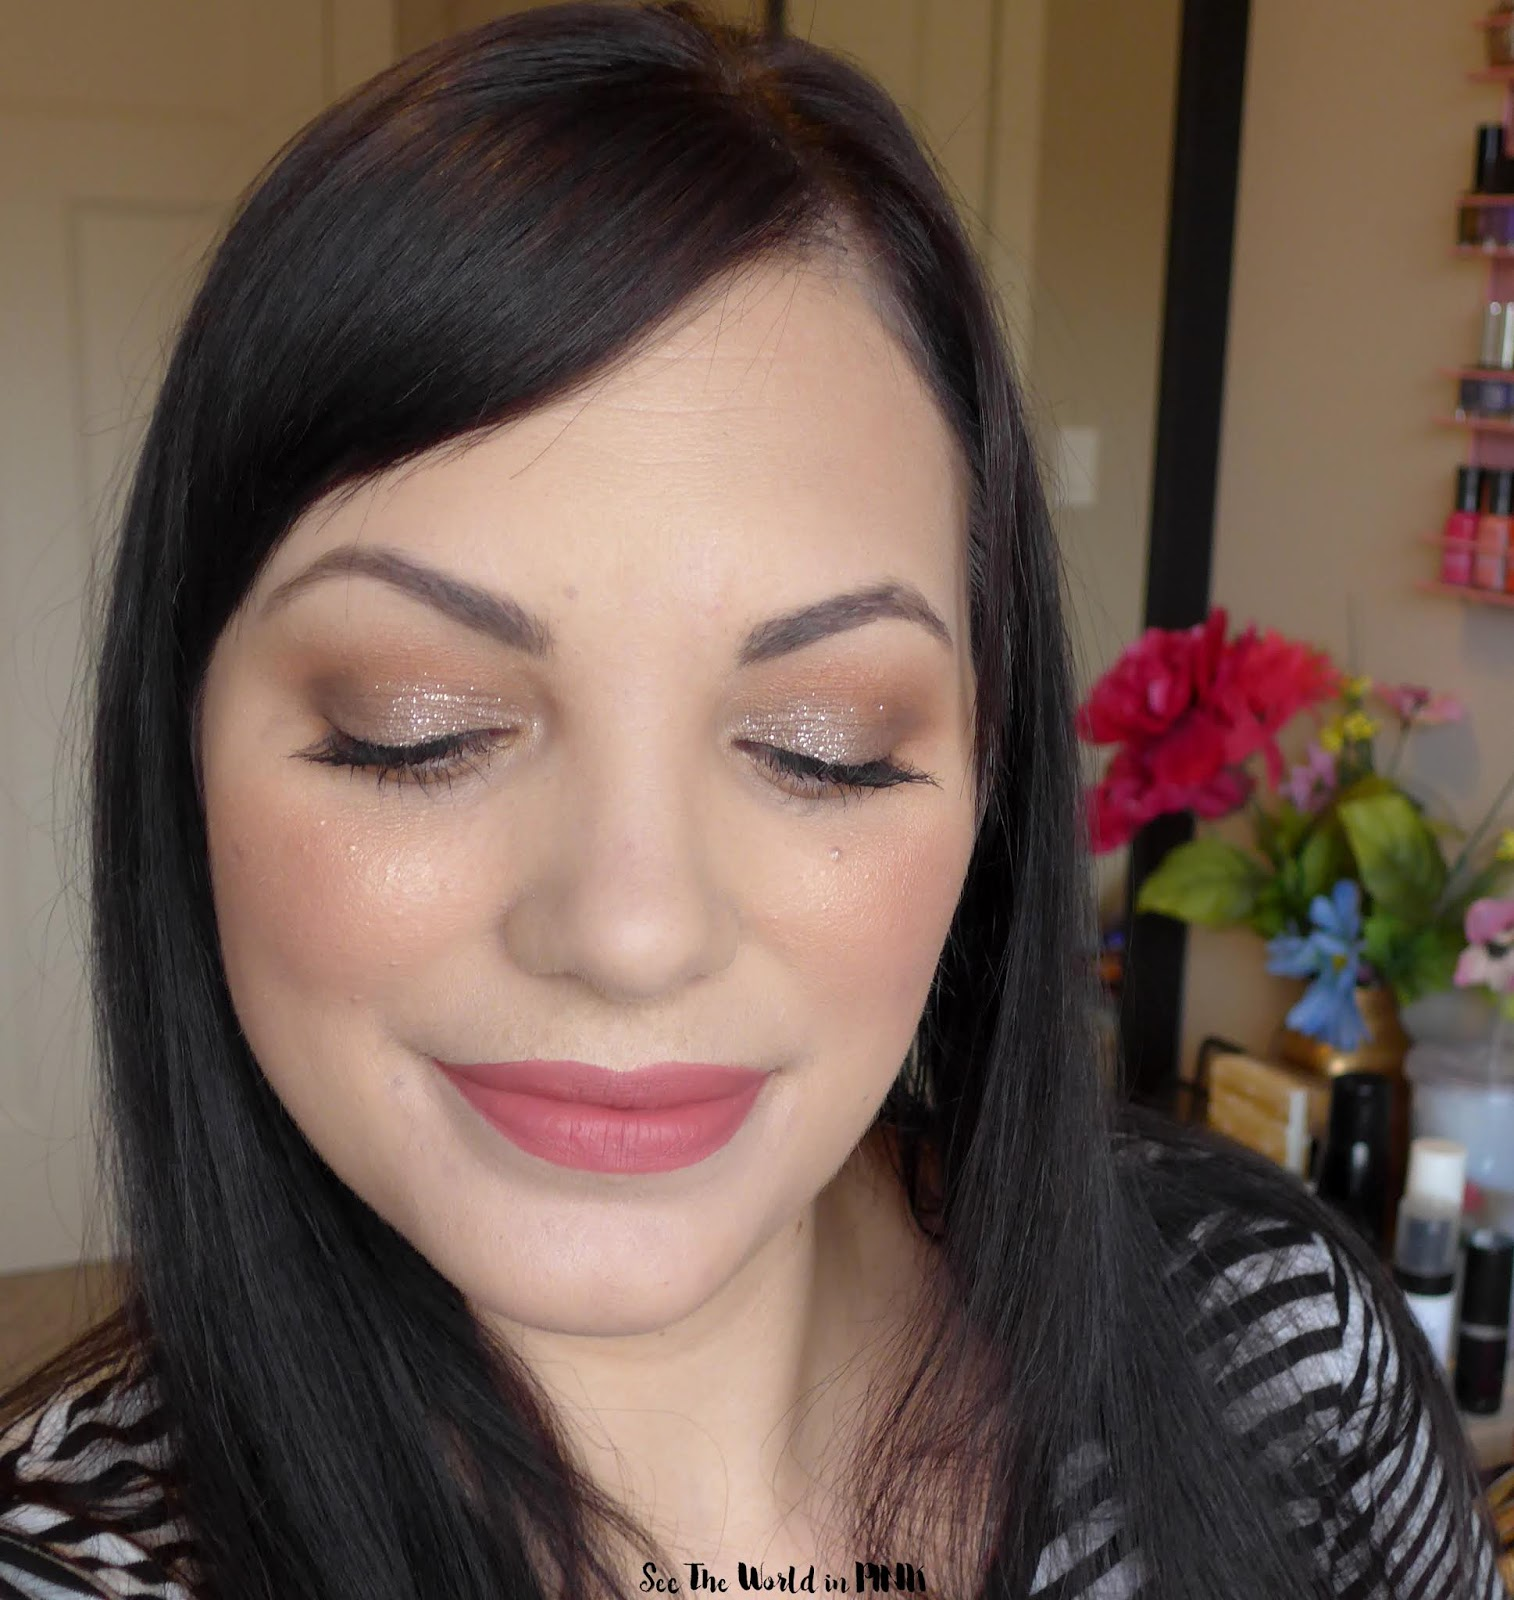 June Shop My Stash - My Go-To Full Face Weatherproof Stay All Day Makeup